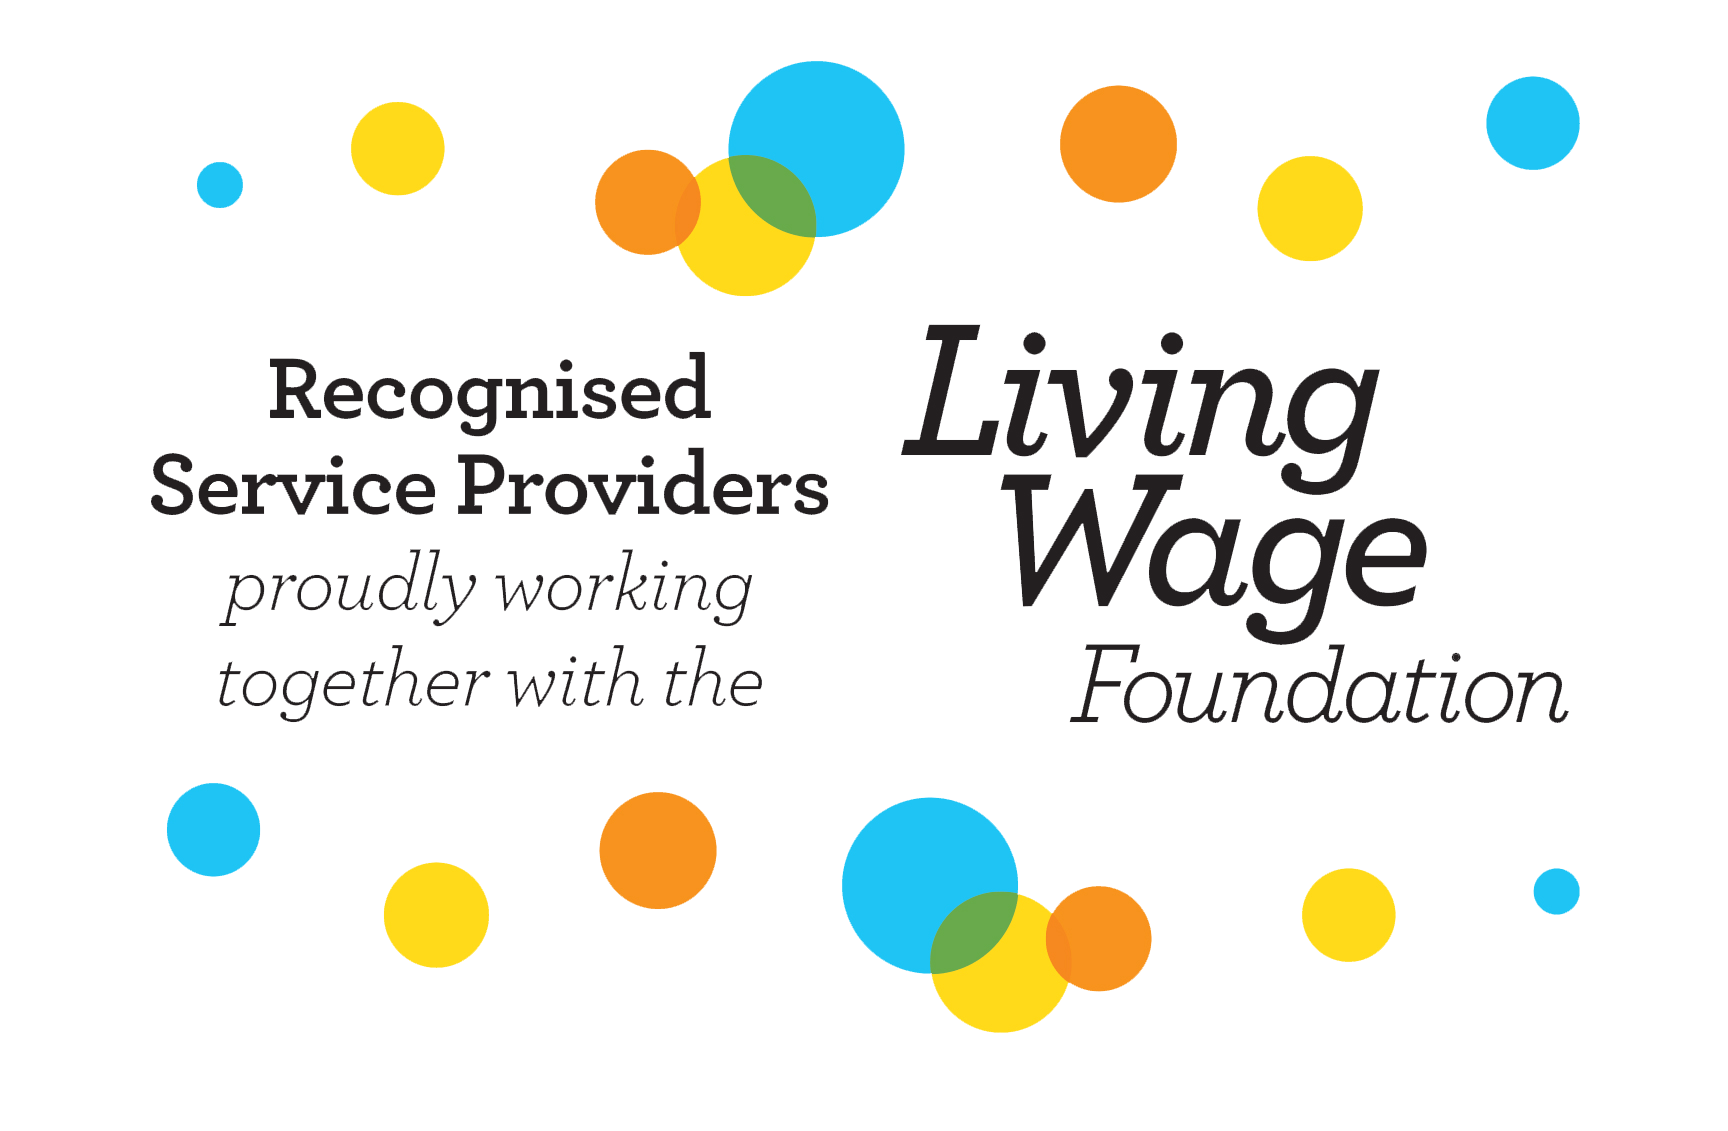 recognised service providers living wage foundation